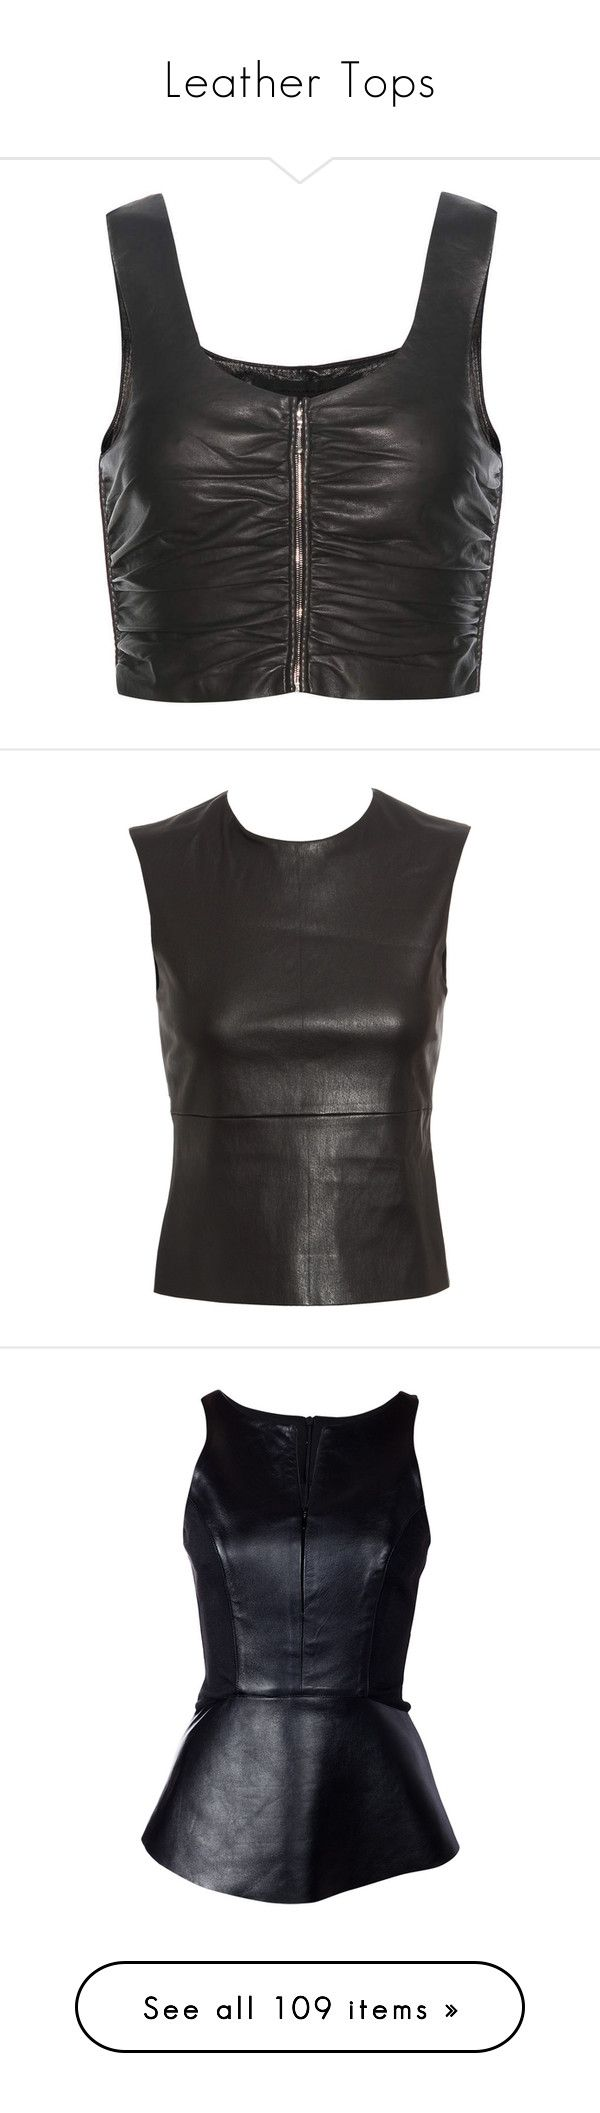 """Leather Tops"" by thecomedian ❤ liked on Polyvore featuring tops, black, cut-out crop tops, leather top, crop top, alexander wang top, alexander wang, shirts, tanks and blusas"